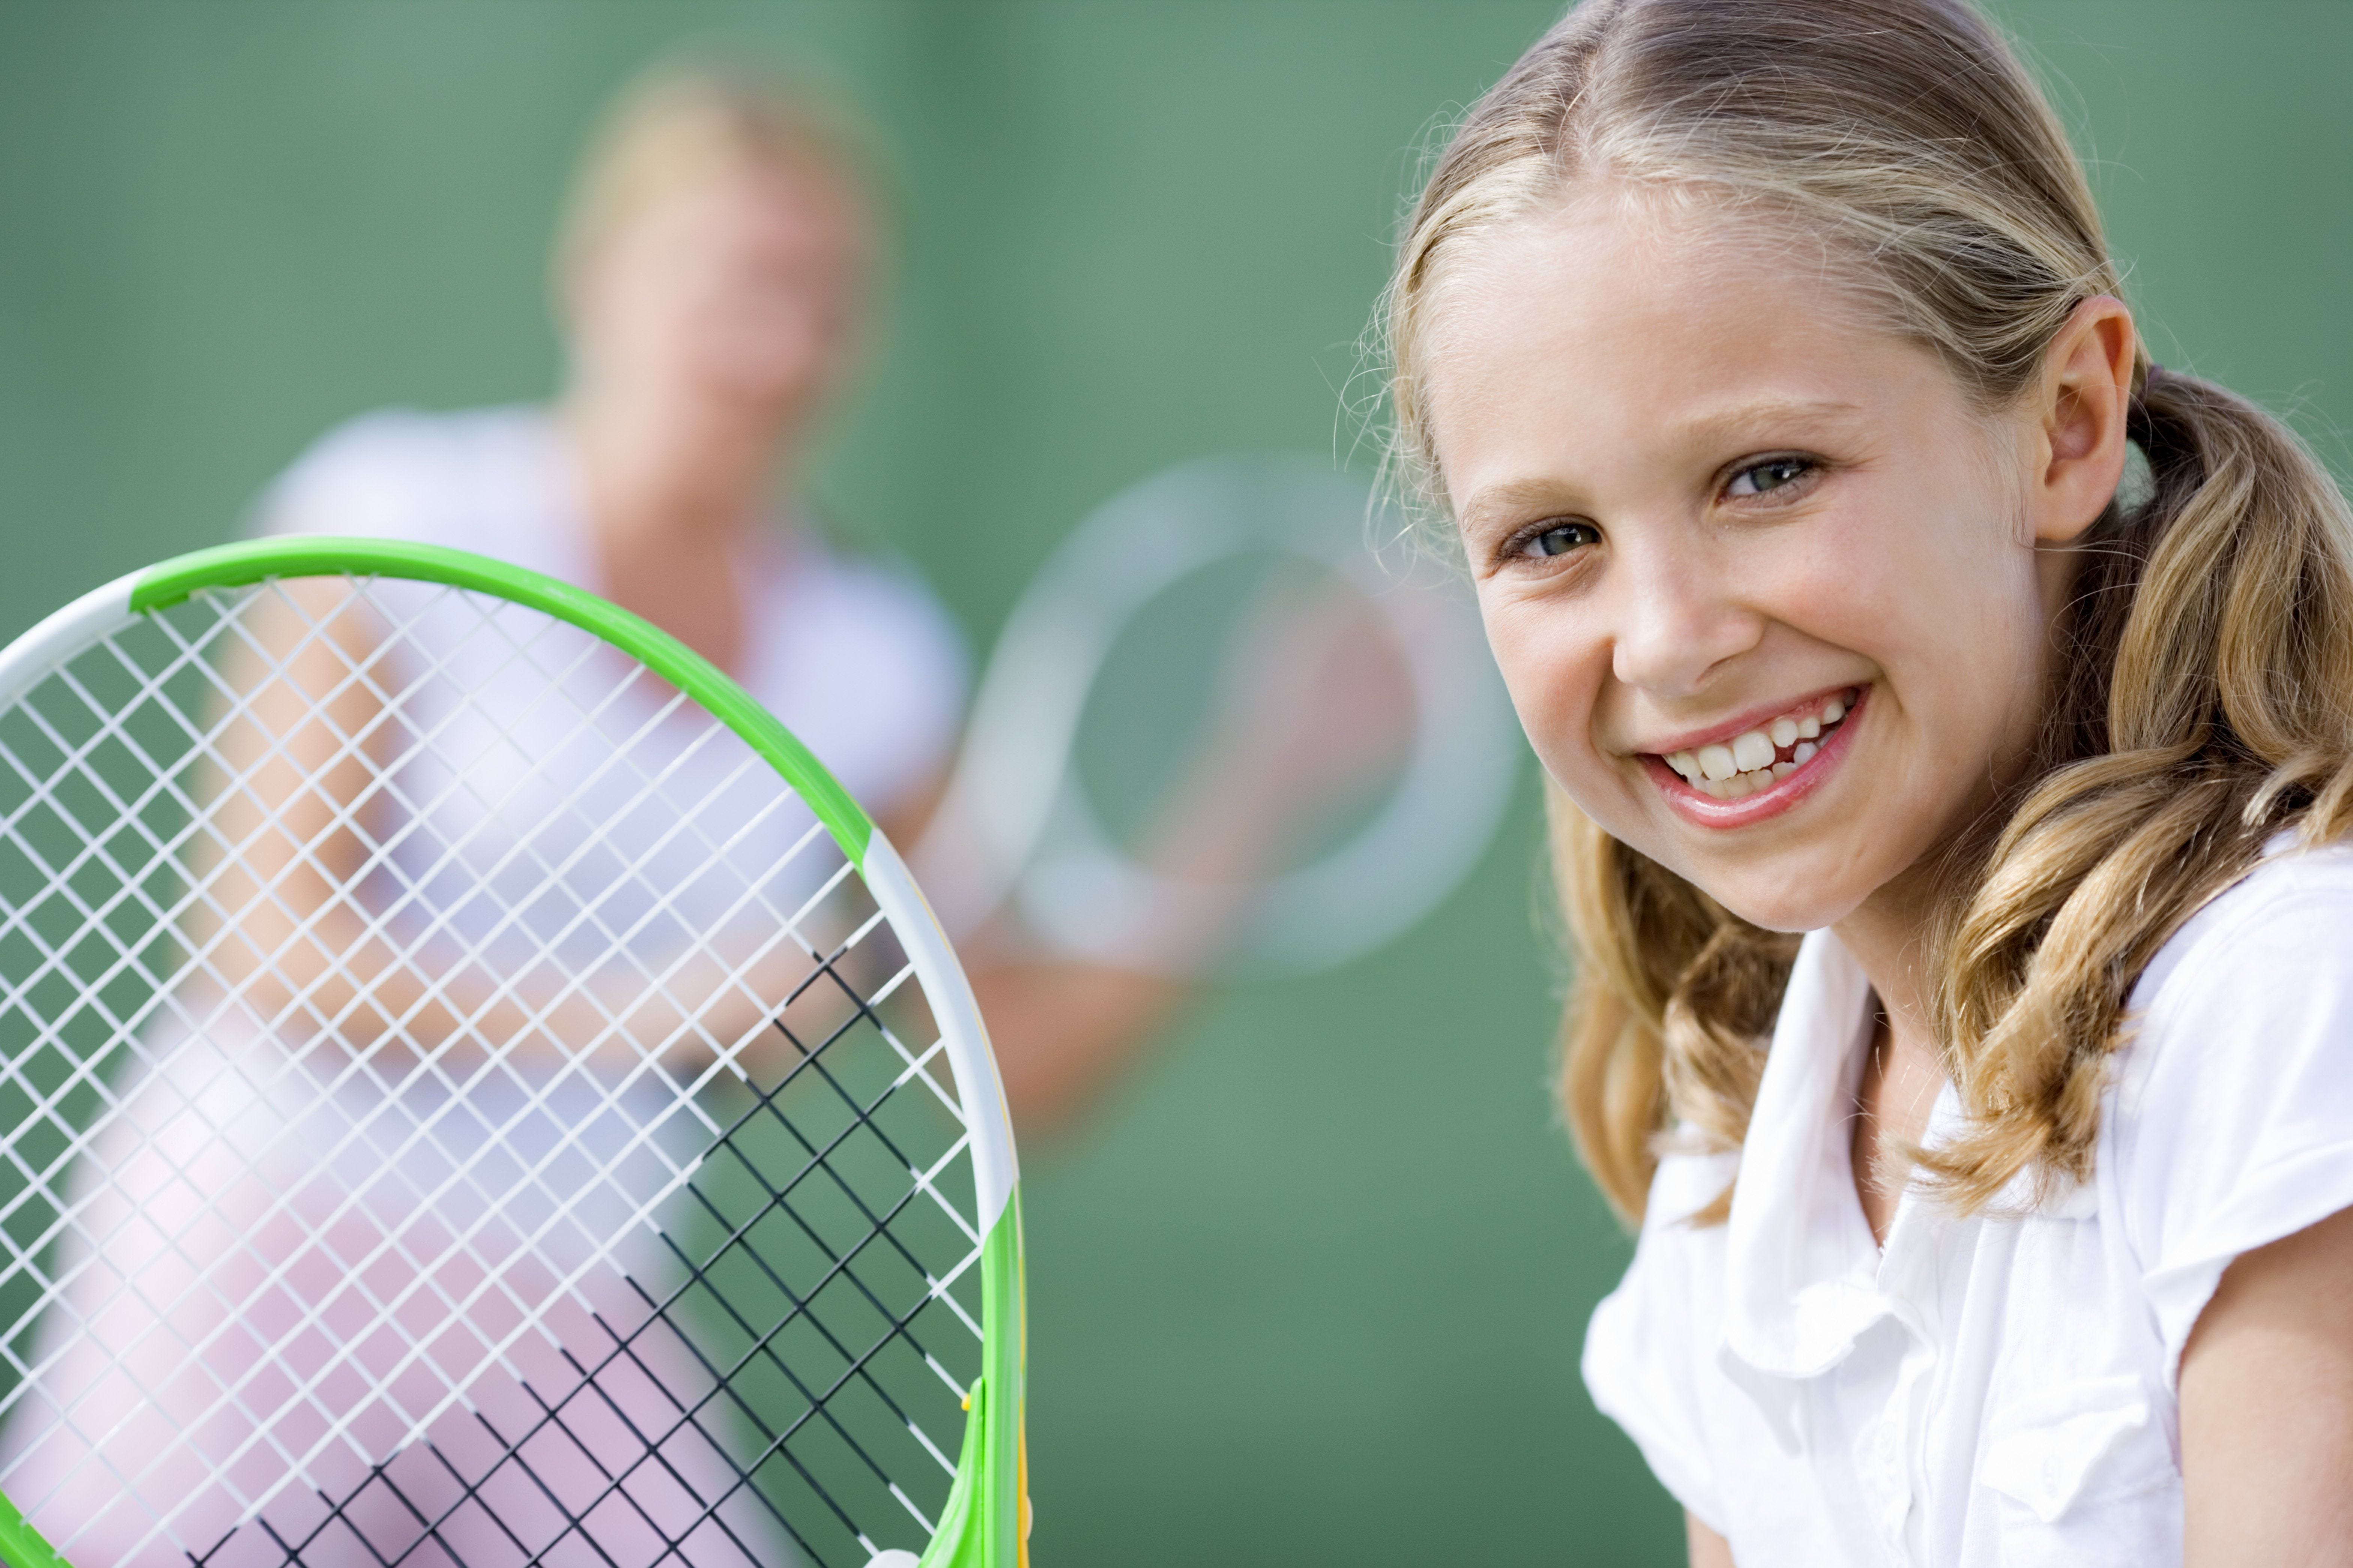 Youth Tennis Summer Camps